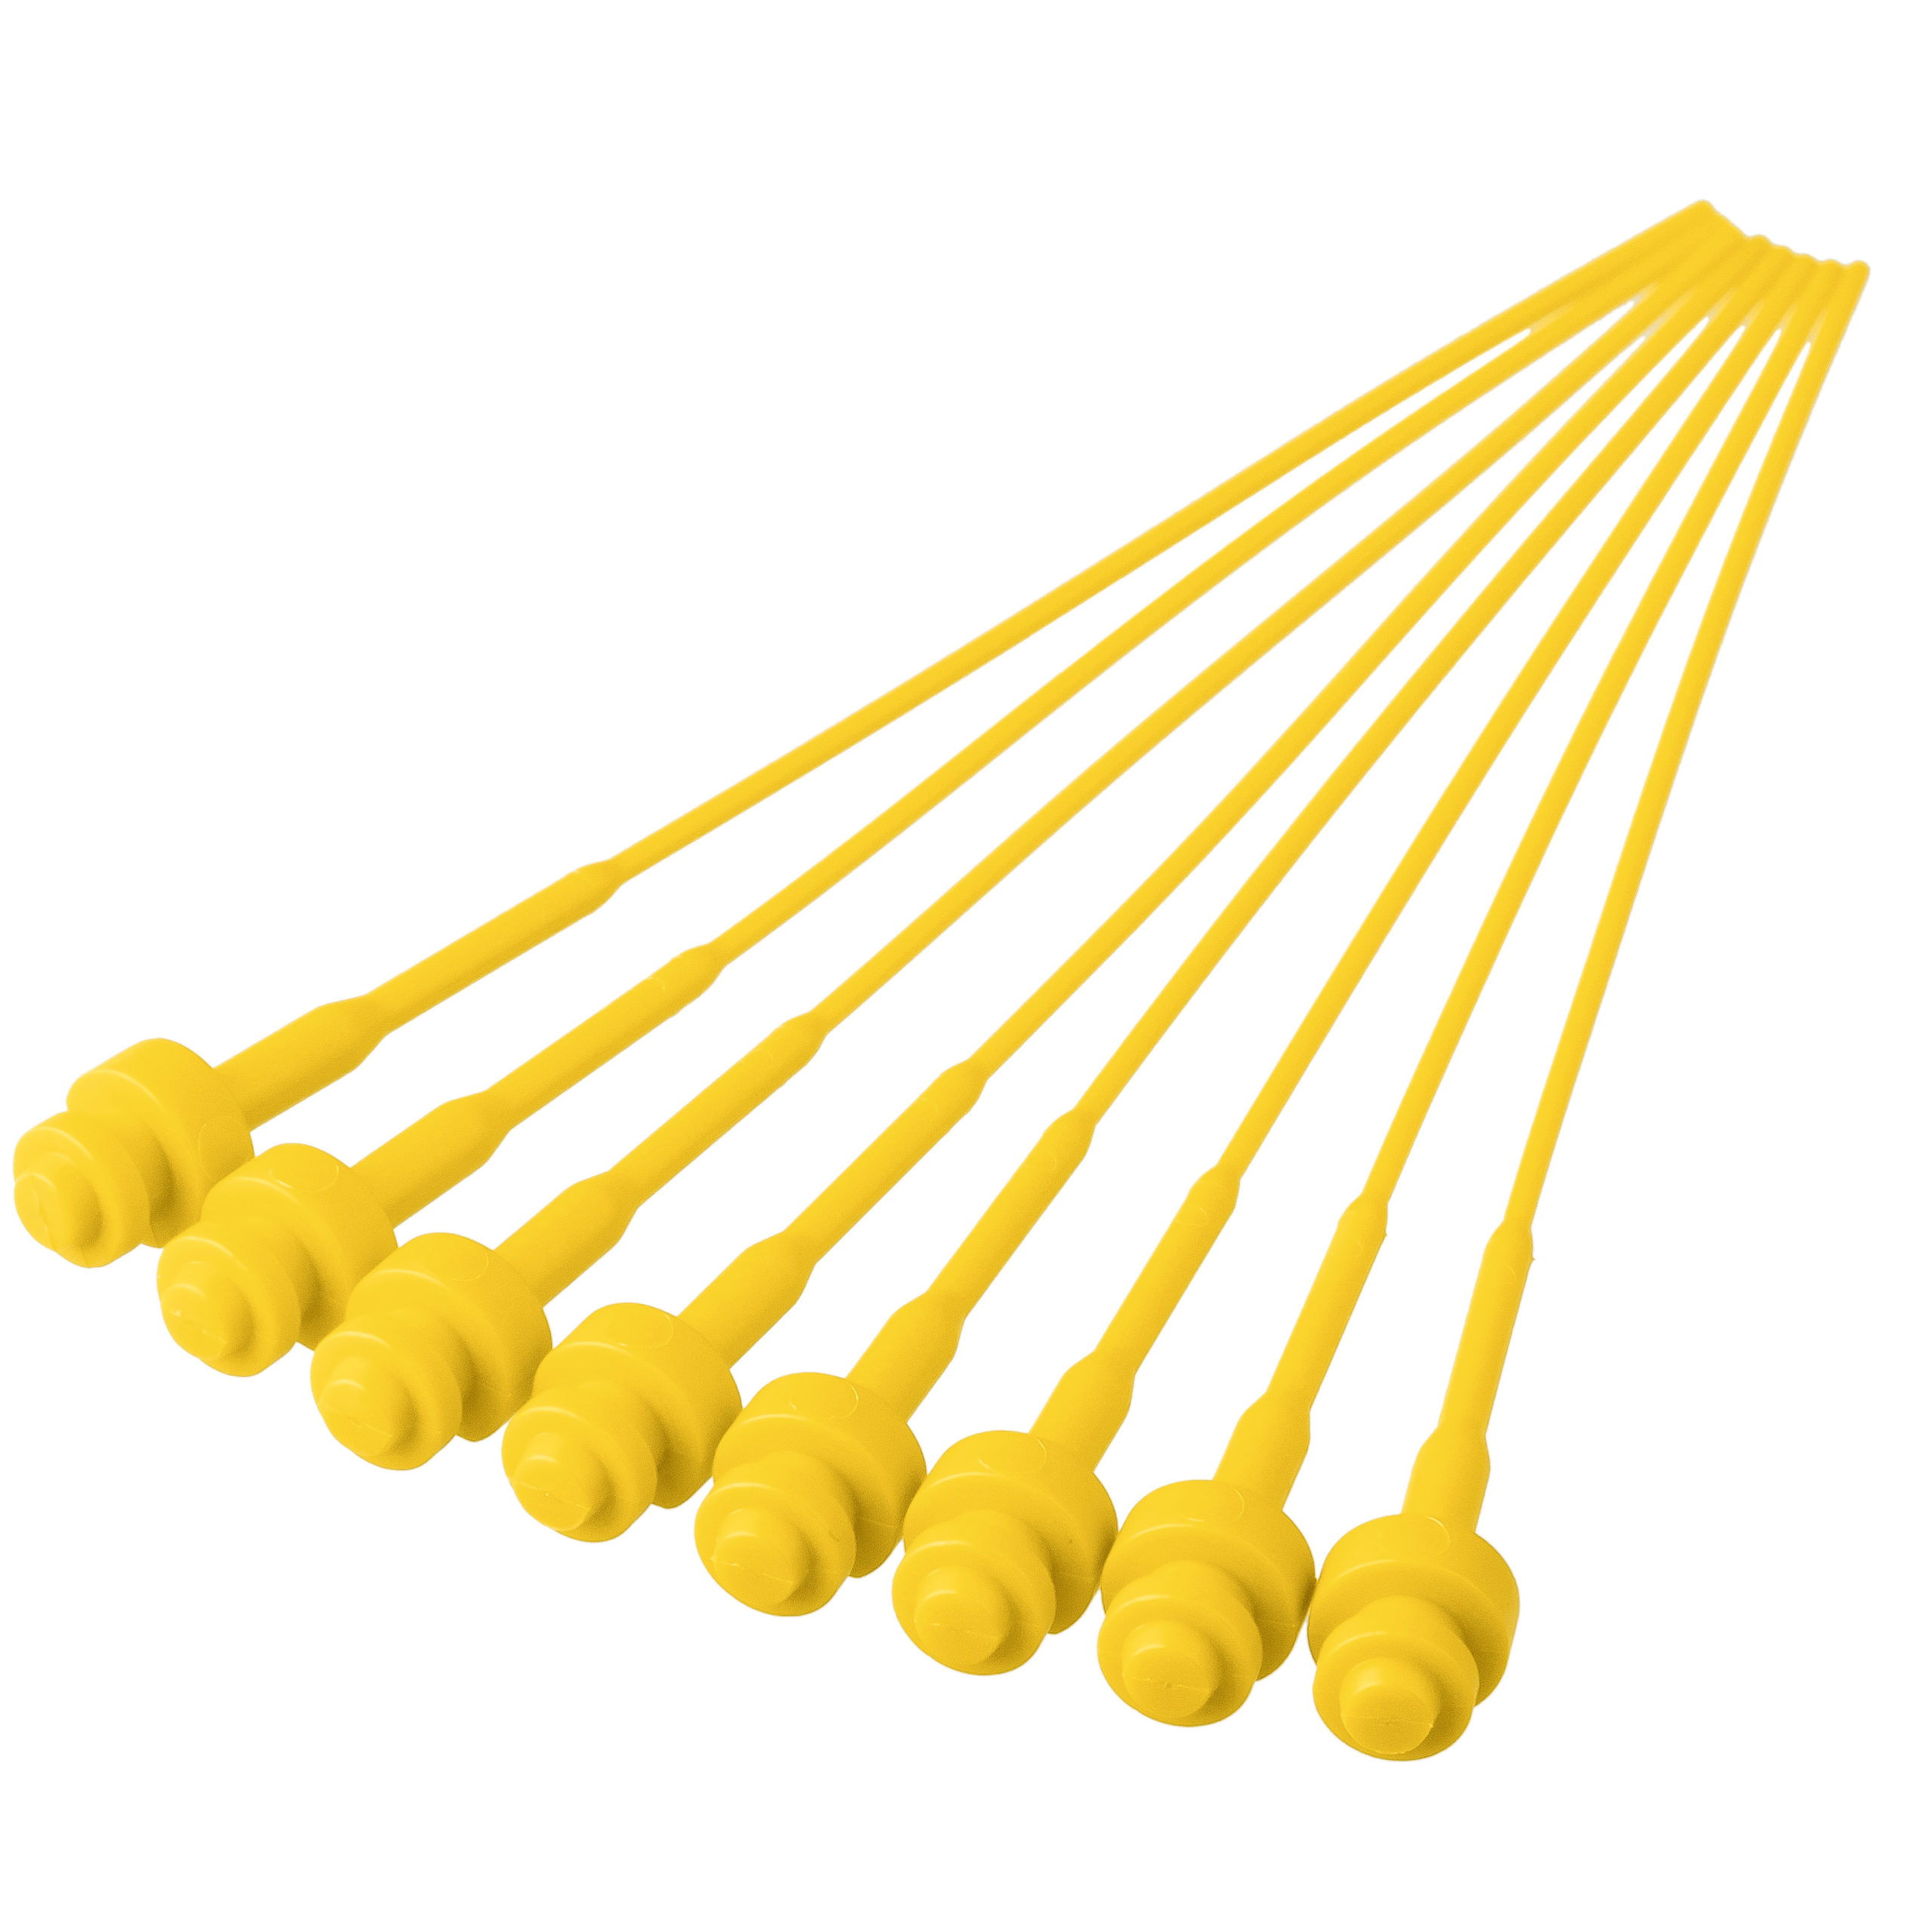 MAP Refill – Plungers n°0 yellow (pack of 16) - 20200